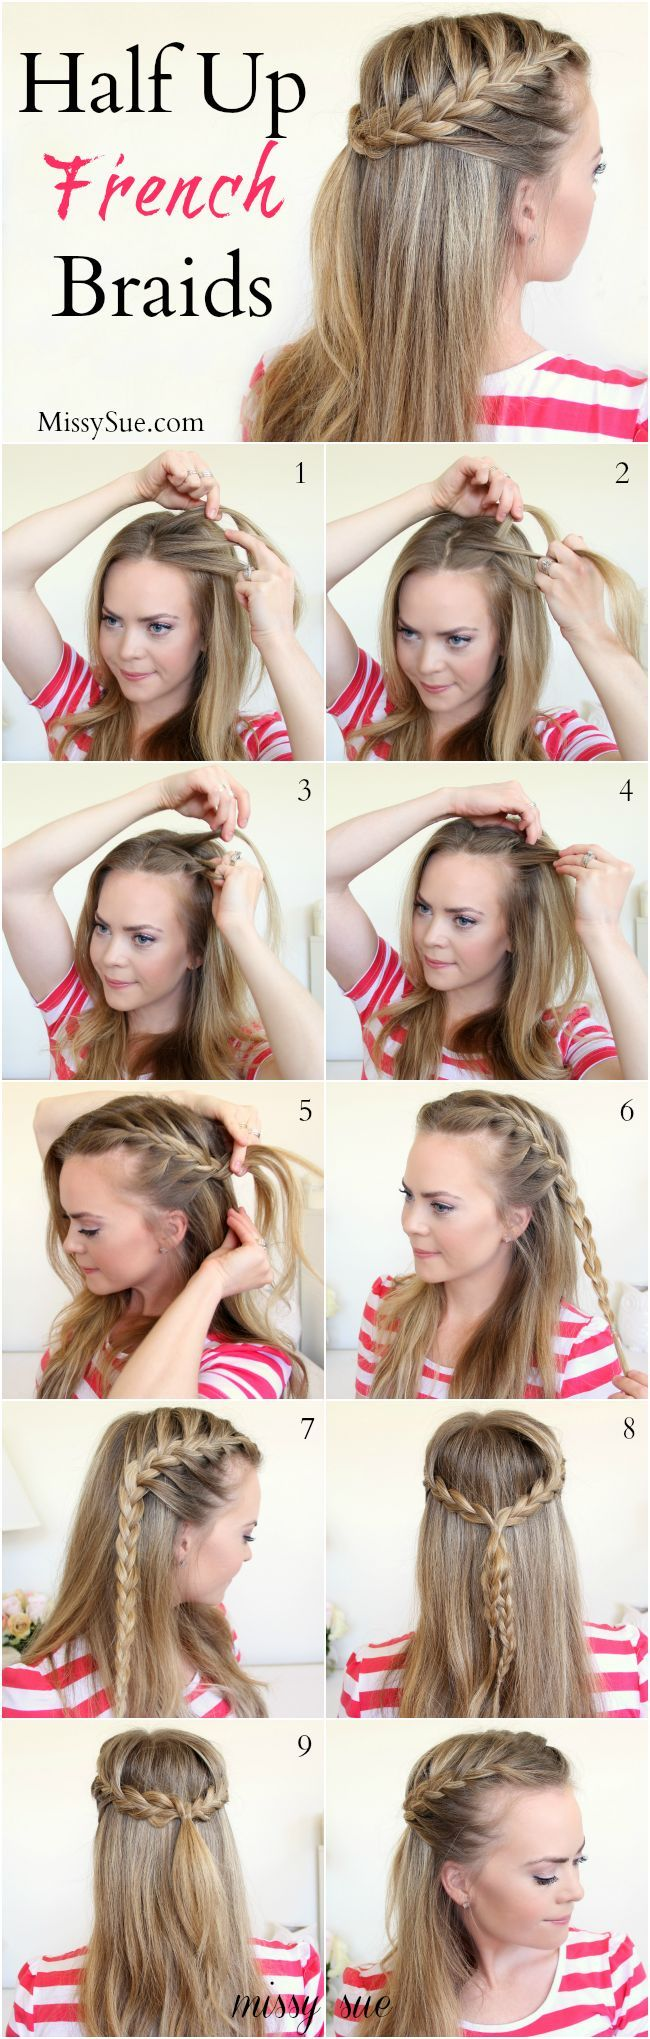 Eleven Half Up French Braids. Really pretty! Great idea for school hair. #hair #hairstyle #braid